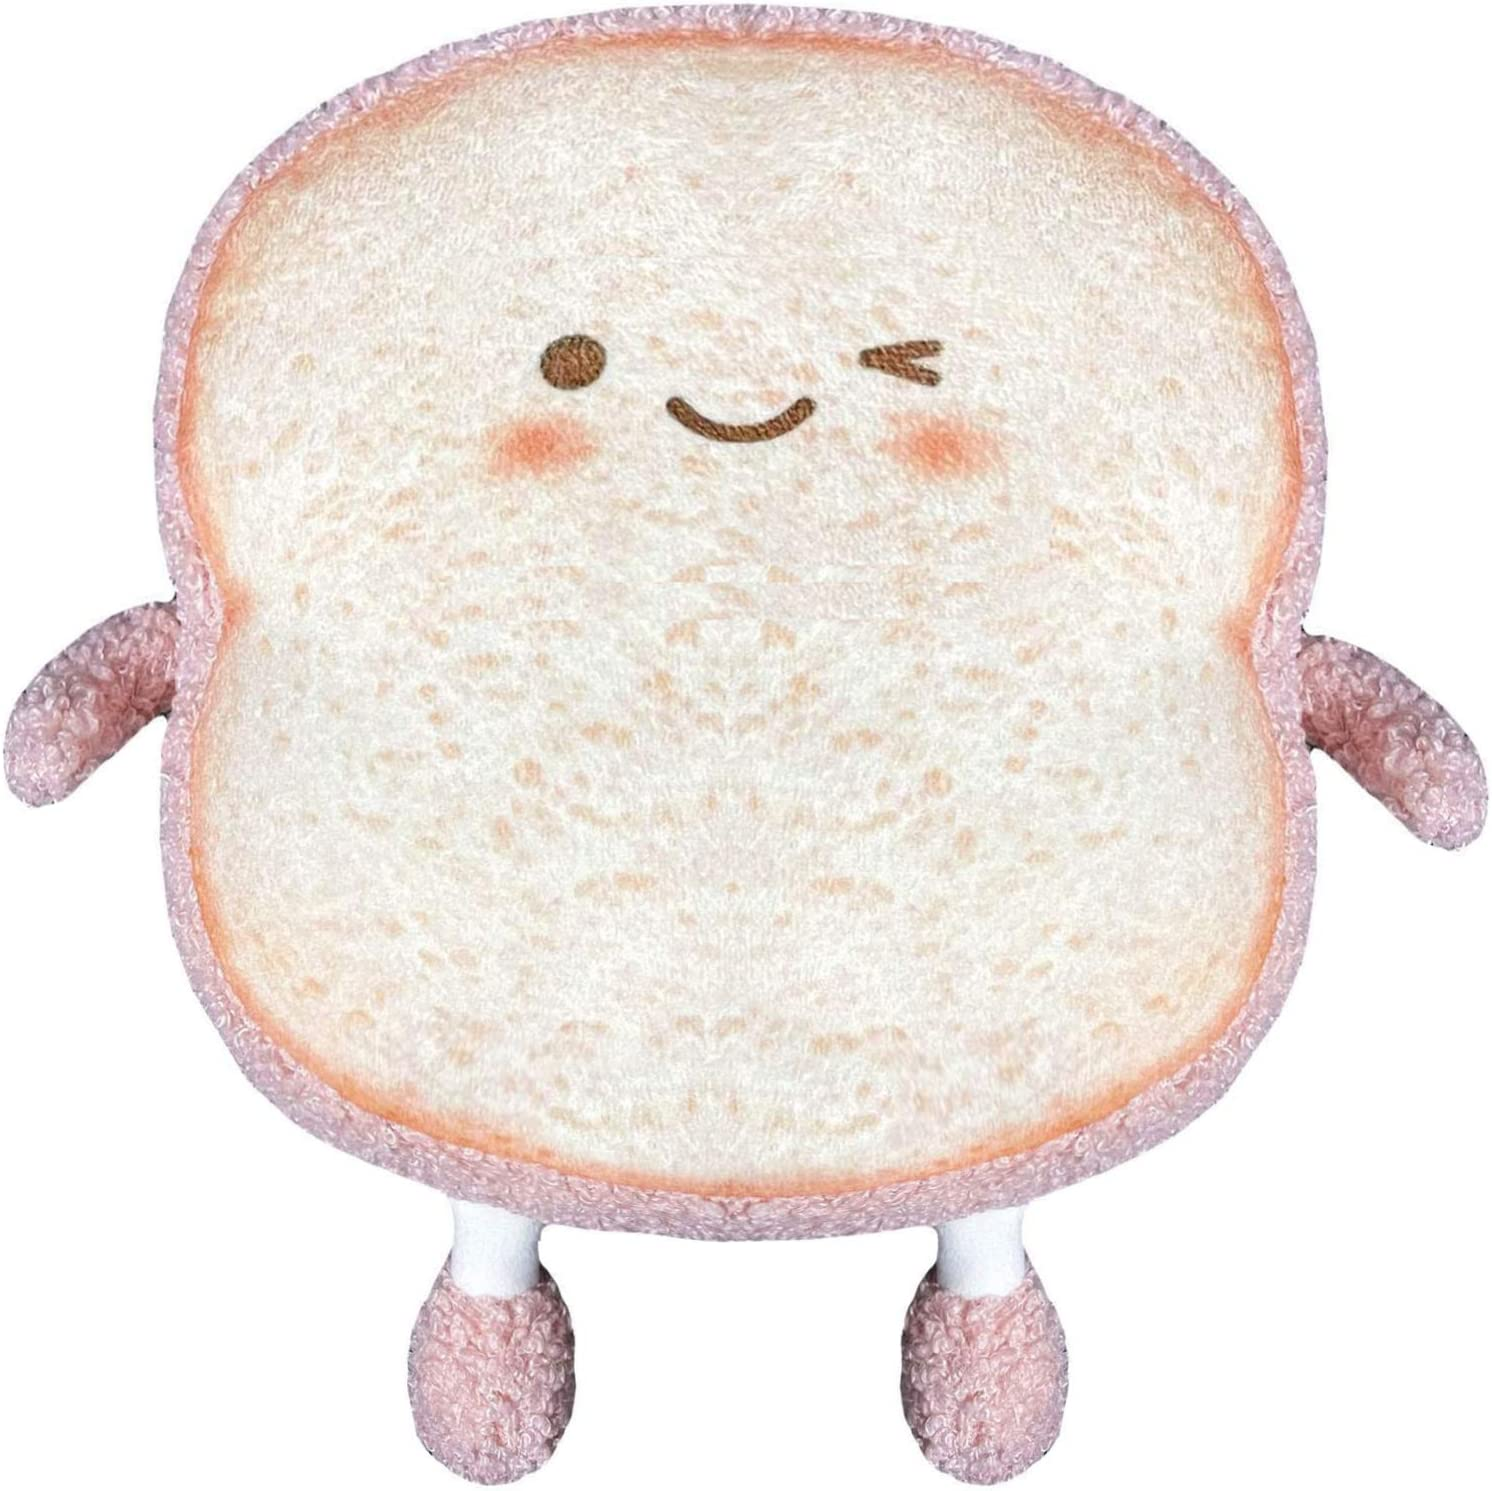 YUESUO Toast Sliced Bread Stuffed Pillow Cotton Food Sofa Pillow Cute Bread Toy for Kids Small Sliced ??Bread (Pink Bread)